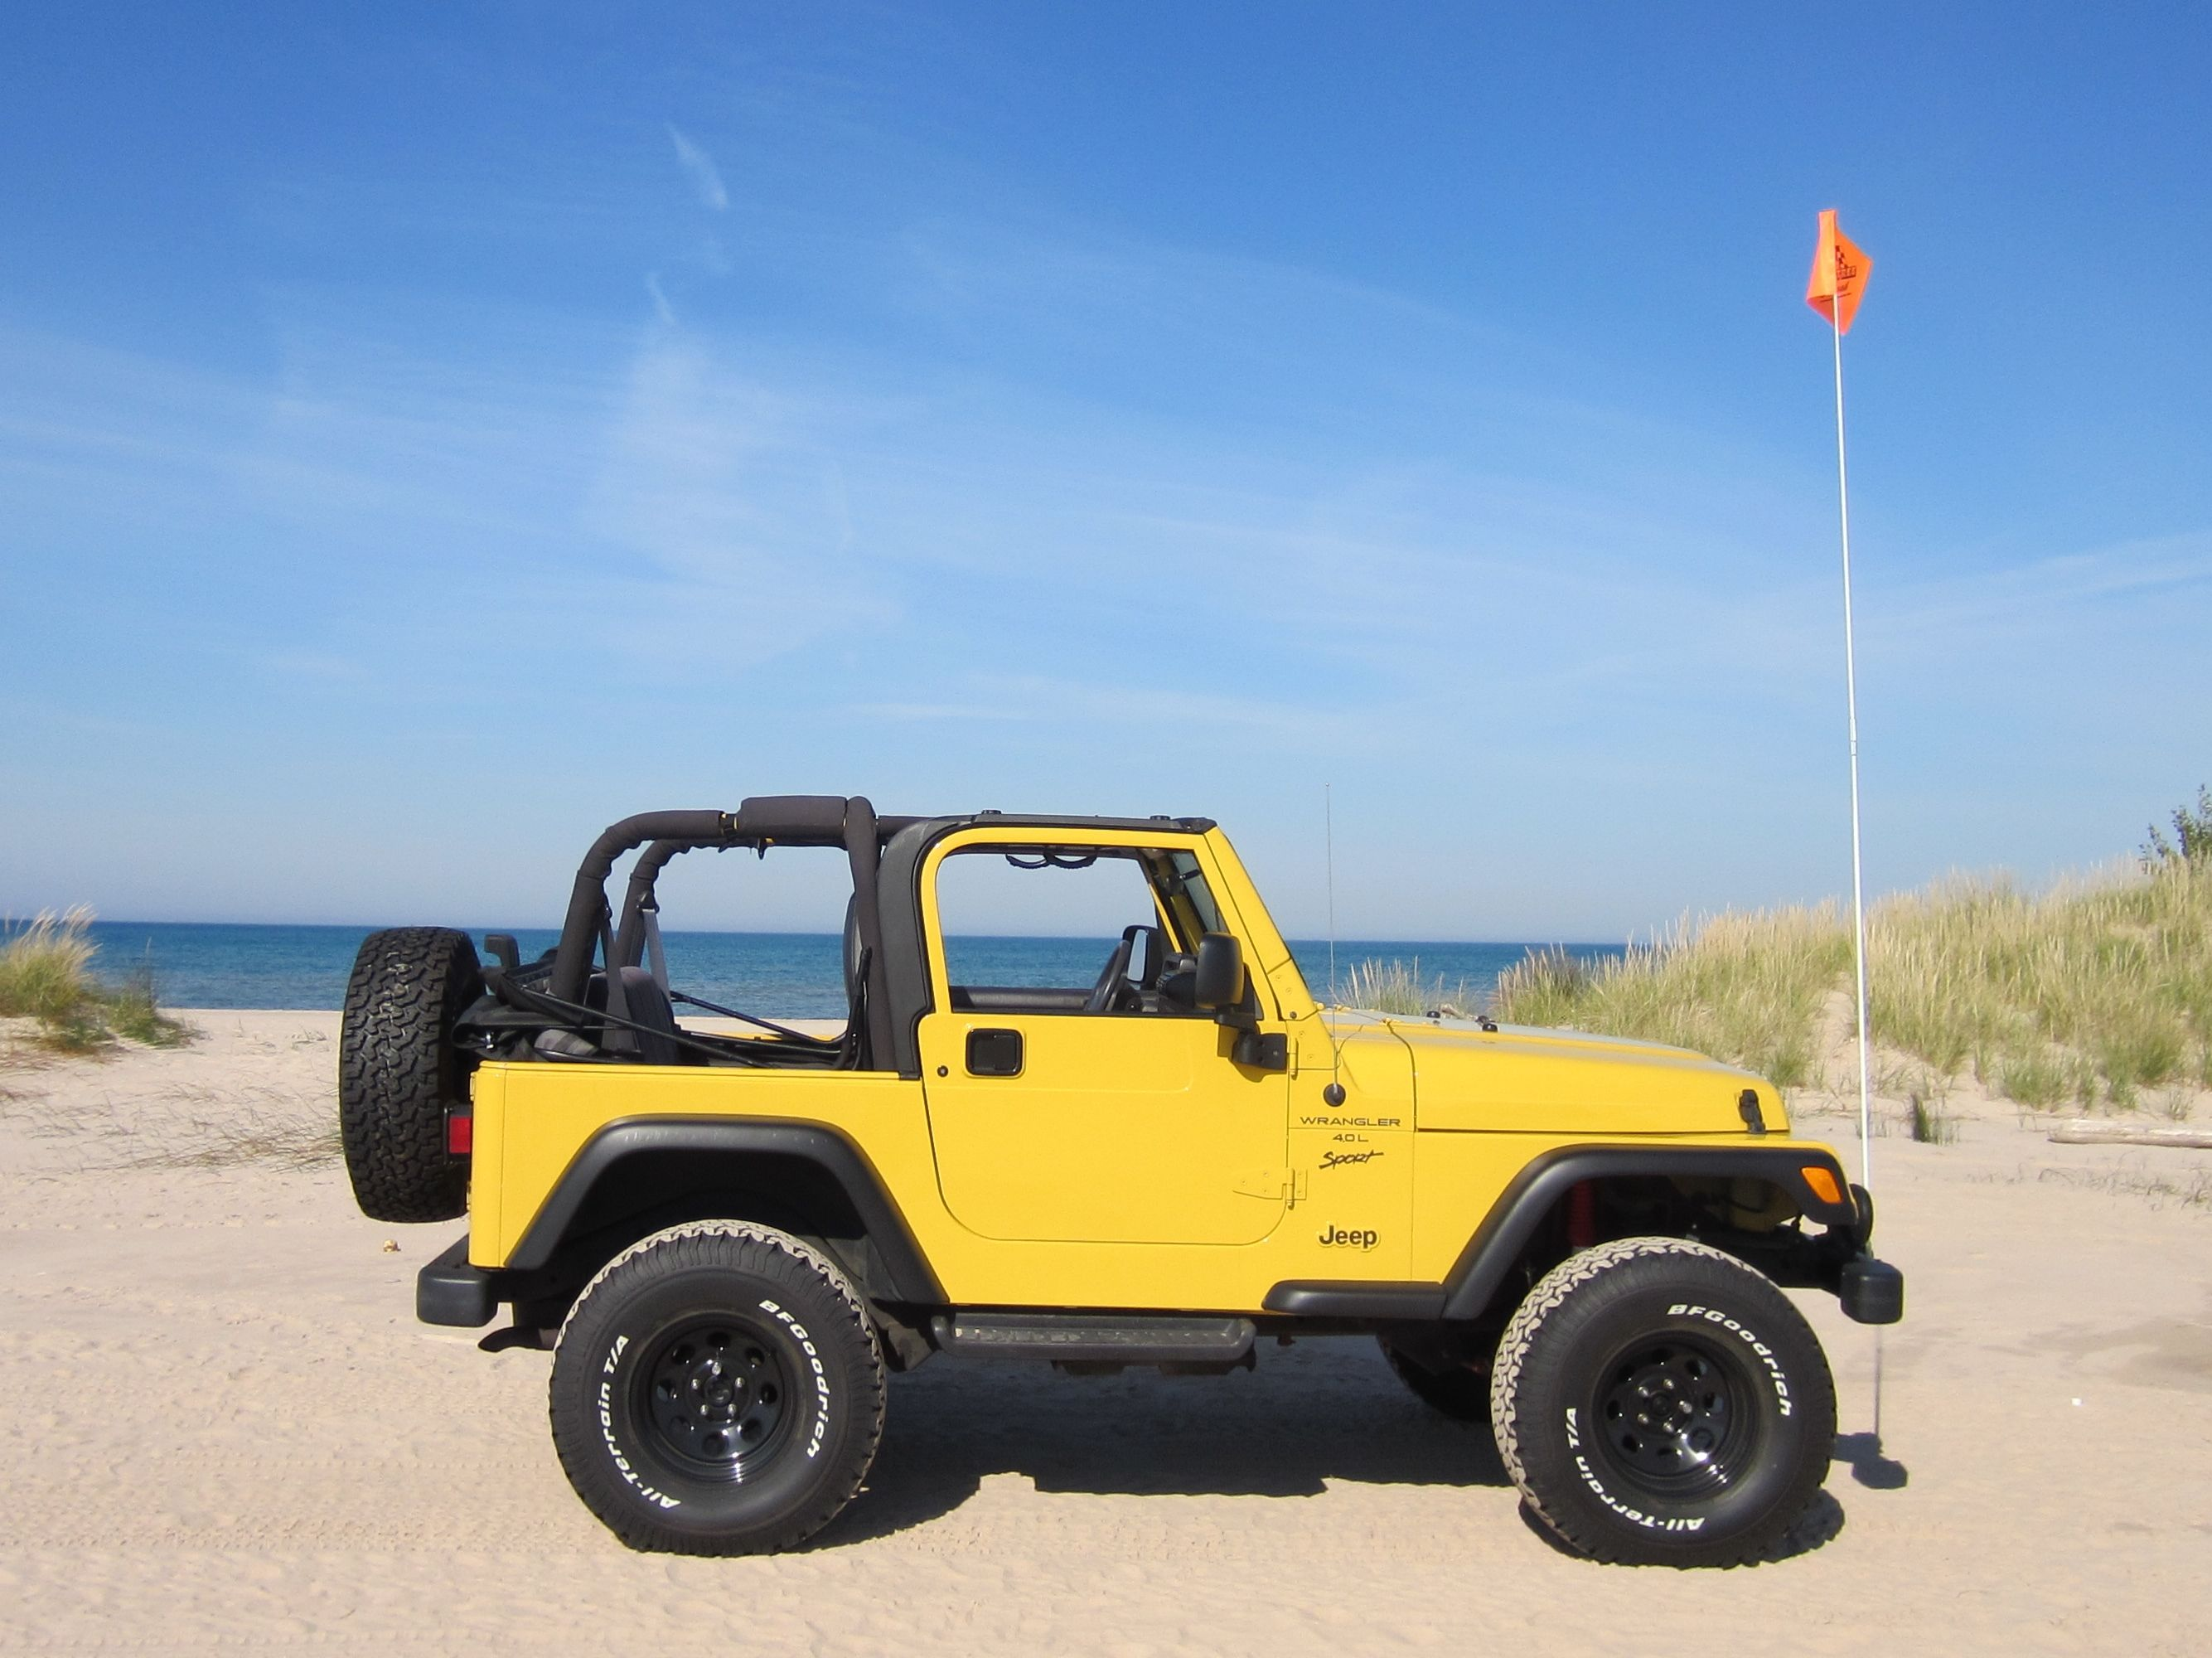 Pin By Hannah Casucci Bartini On Things I Like For Myself Dream Cars Jeep Jeep Wrangler Yellow Jeep